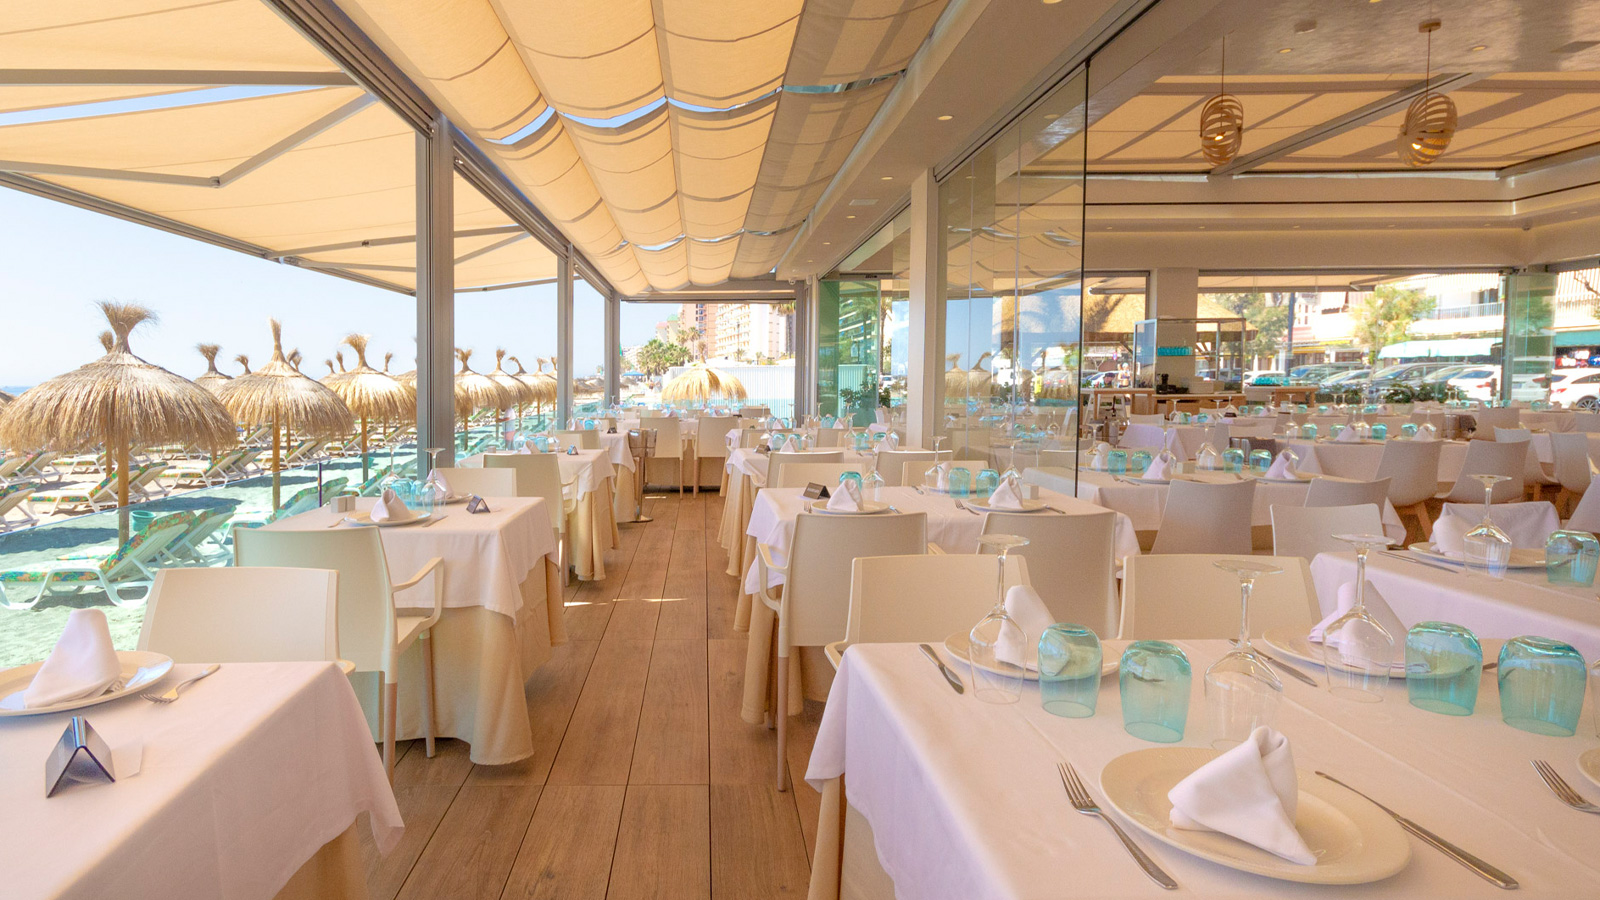 The authentic flavour of the Mediterranean comes to La Caracola's tables with Porcelanosa